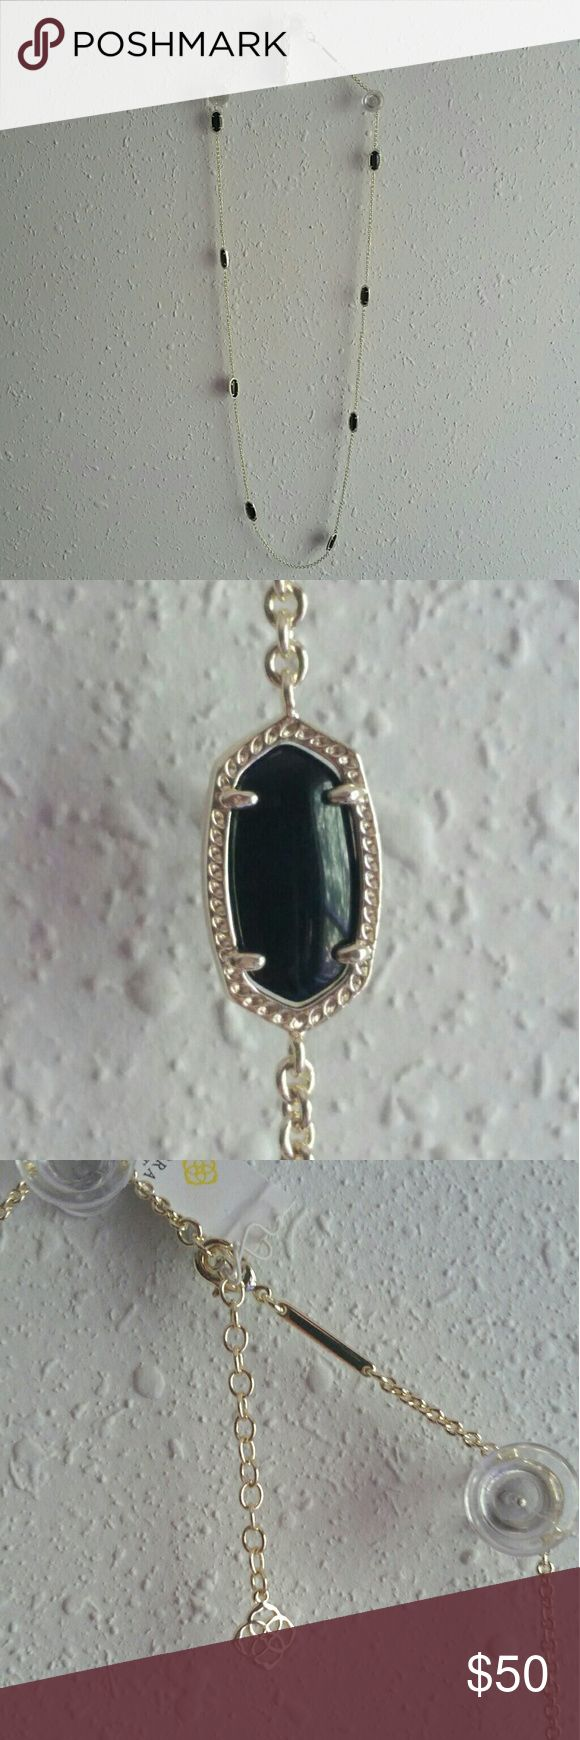 """Kendra Scott Kelsie Silver and Black Long Necklace Long, silver chain with black stones by Kendra Scott. Brand new with tags. Gorgeous and on-trend! This necklace would be perfect for layering. Or, wear it alone to make a simple statement. Chain is approximately 36"""" long, plus some adjustable length at clasp, ending in distinctive Kendra Scott charm. Kendra Scott Jewelry Necklaces"""